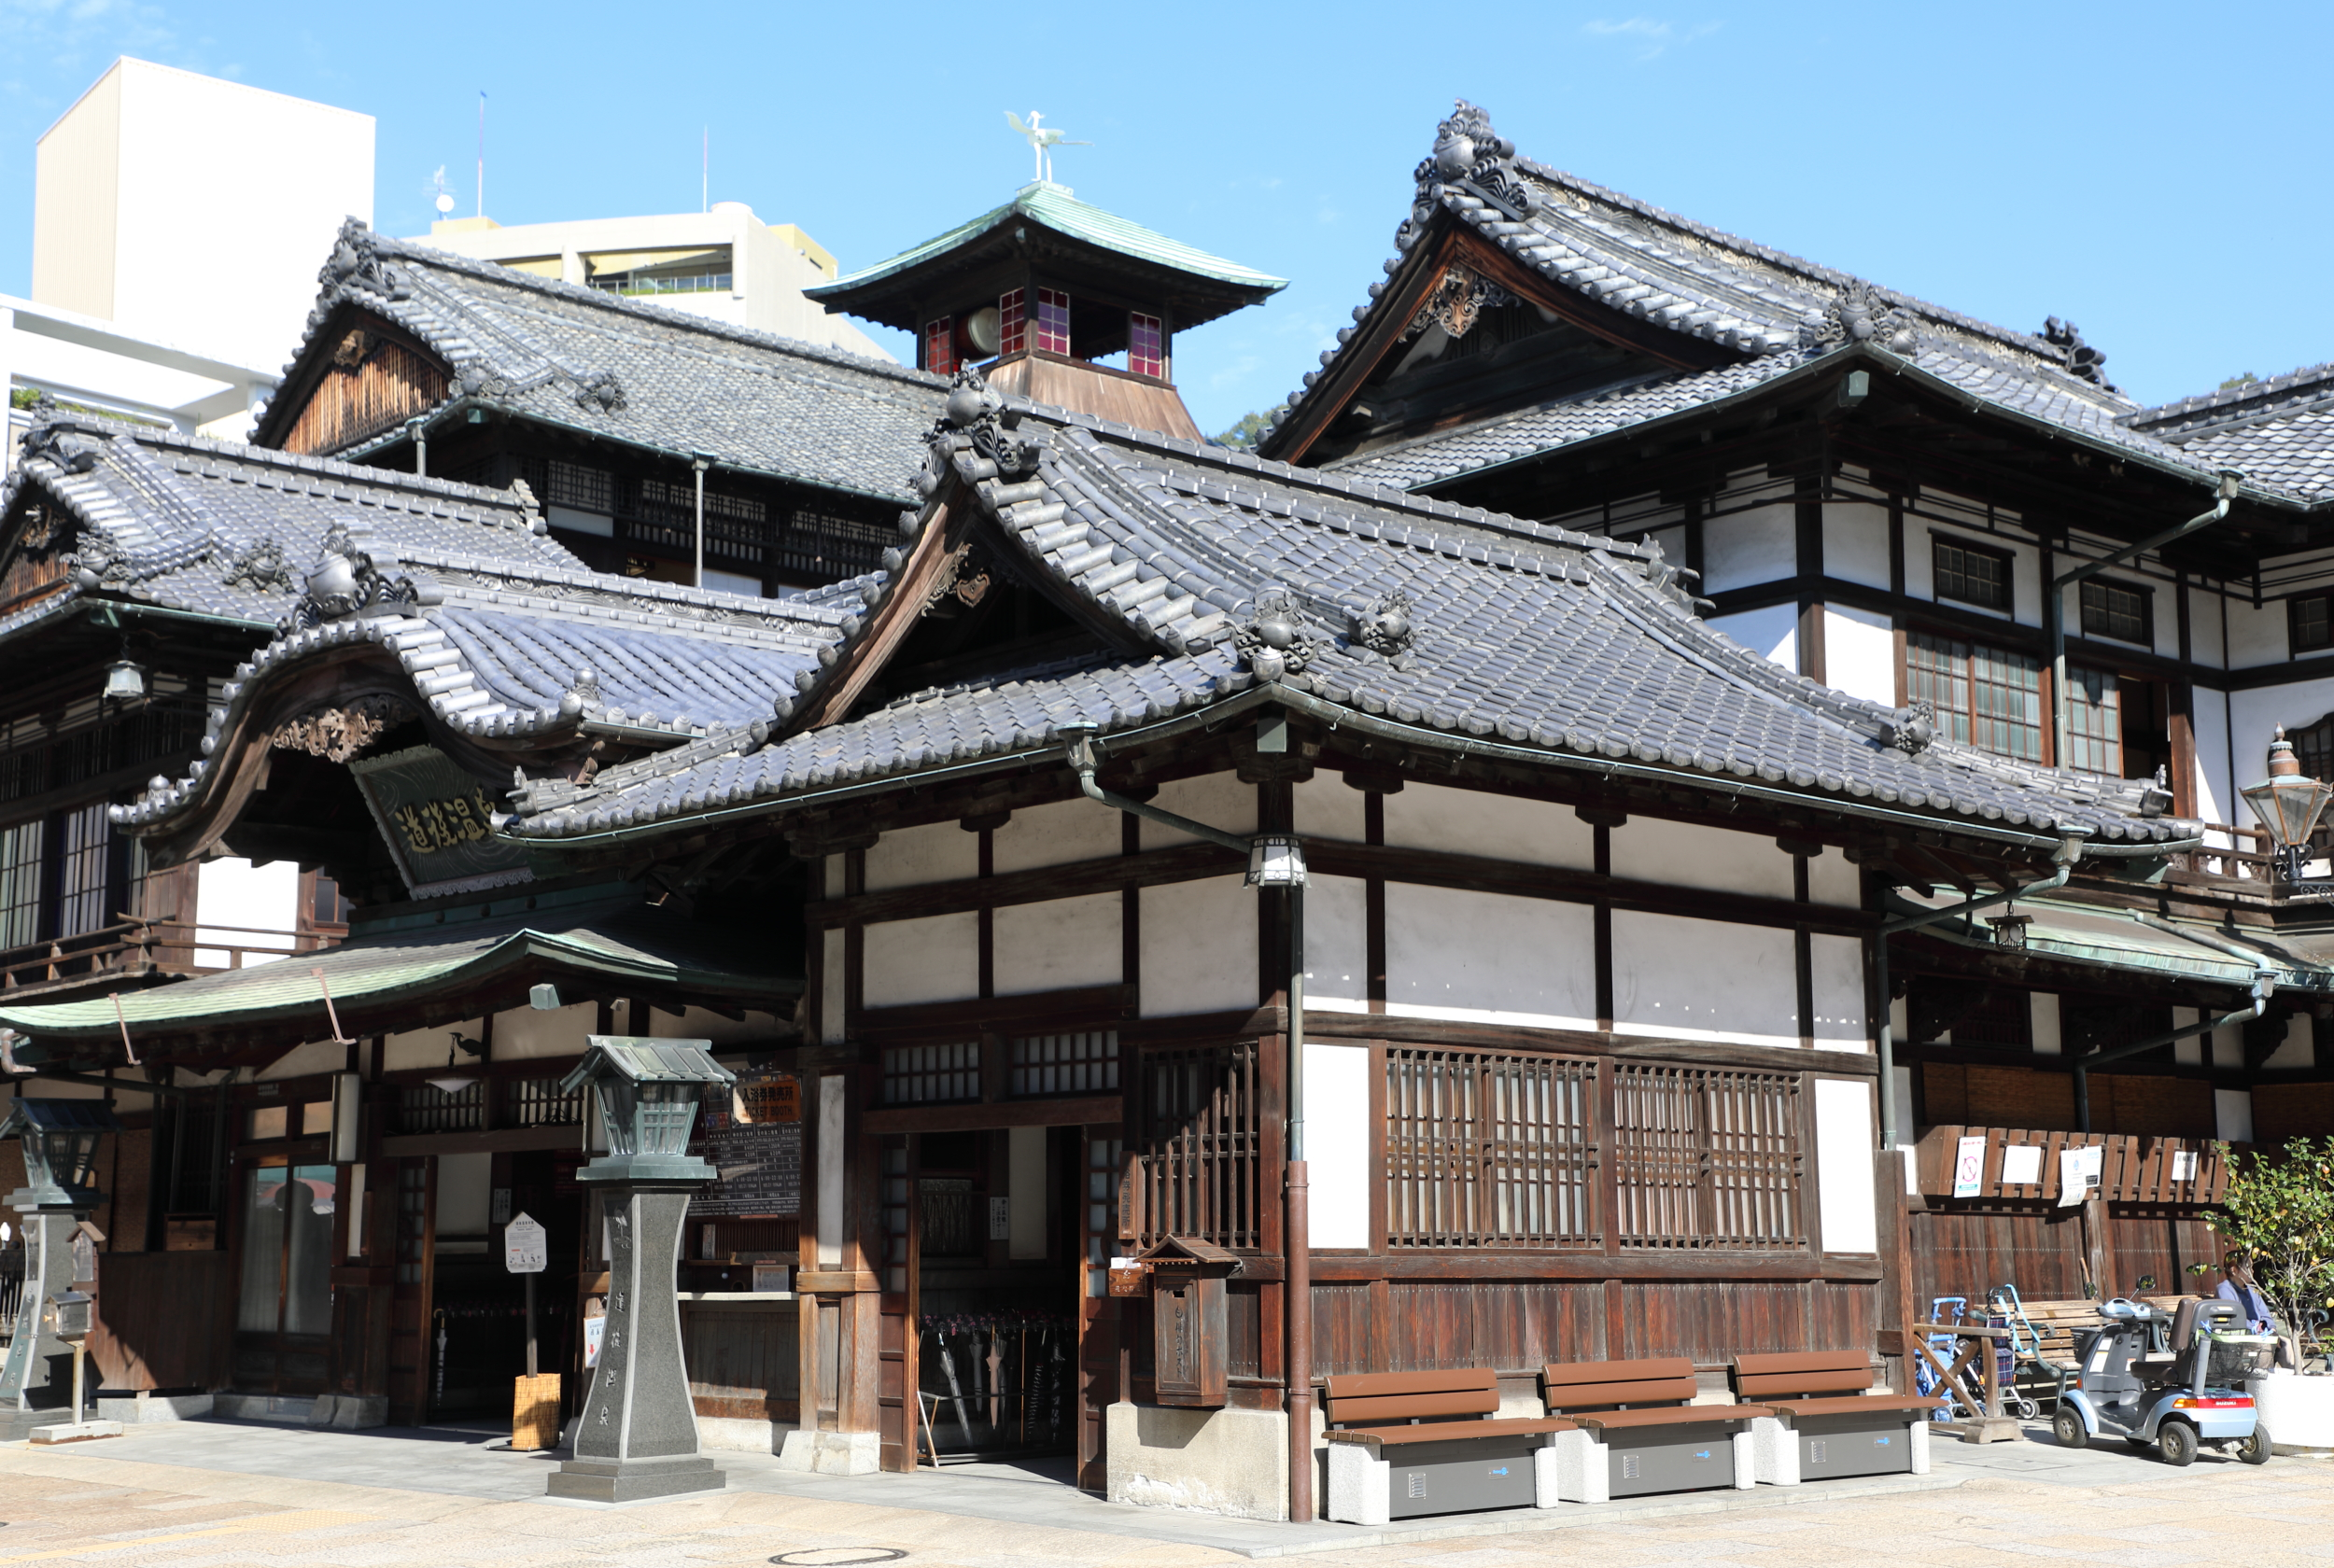 Dogo Onsen Honkan offers three increasingly exclusive classes of service as you go from the first to third floor where the Imperial Baths are located.